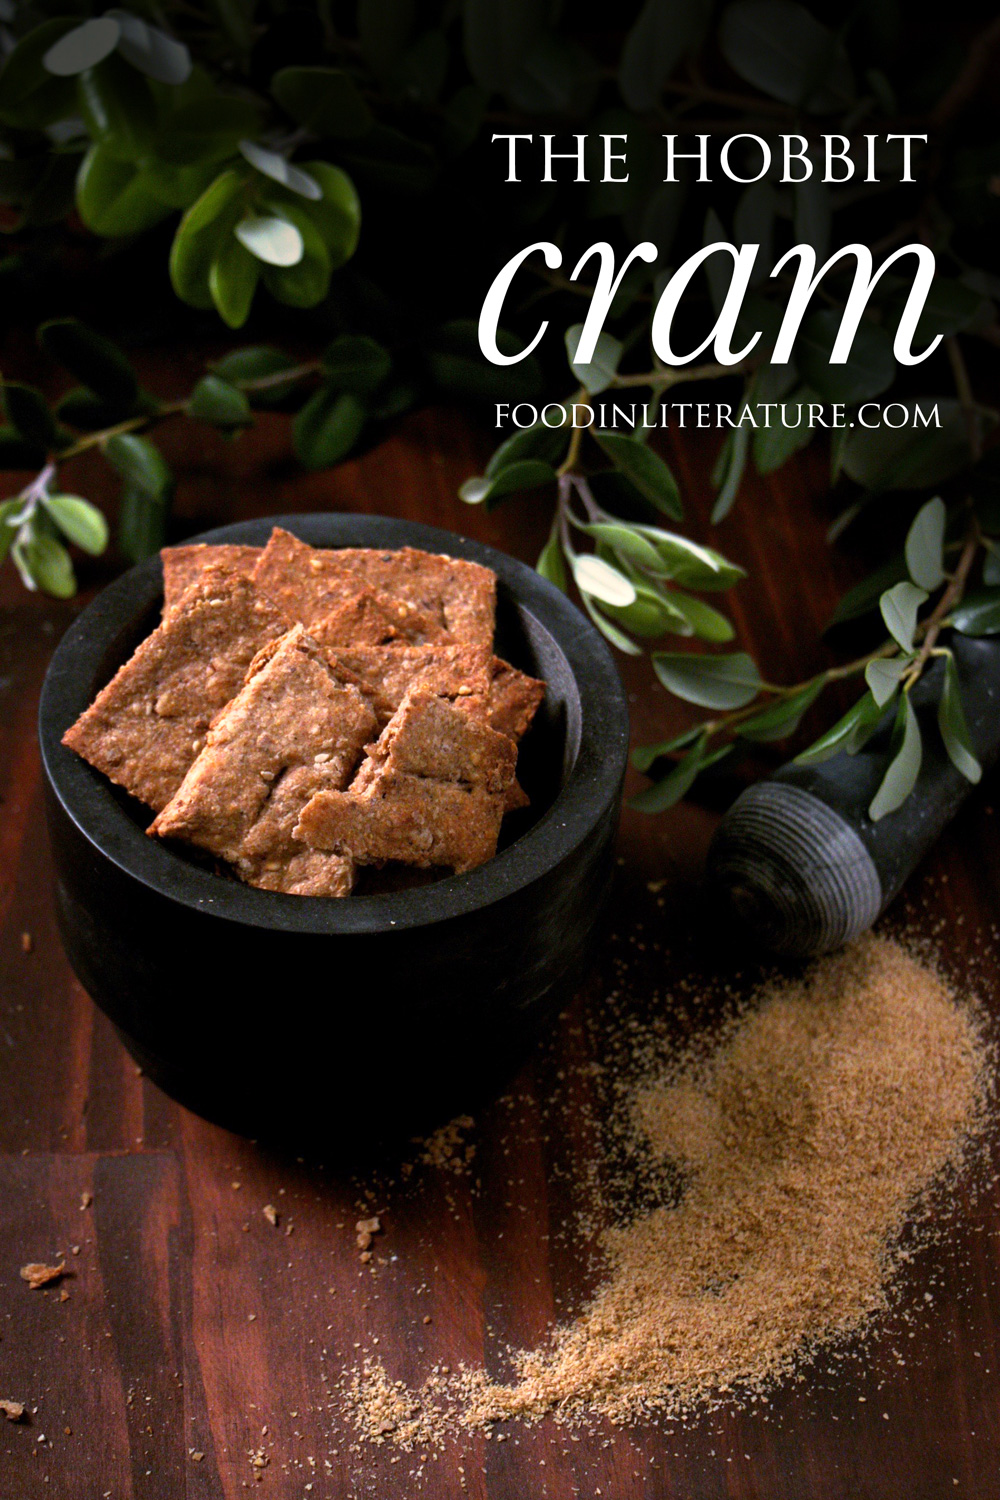 Wonder what cram from the Hobbit tastes like? We've made the recipe! It's easy to make, nutritious and long lasting!